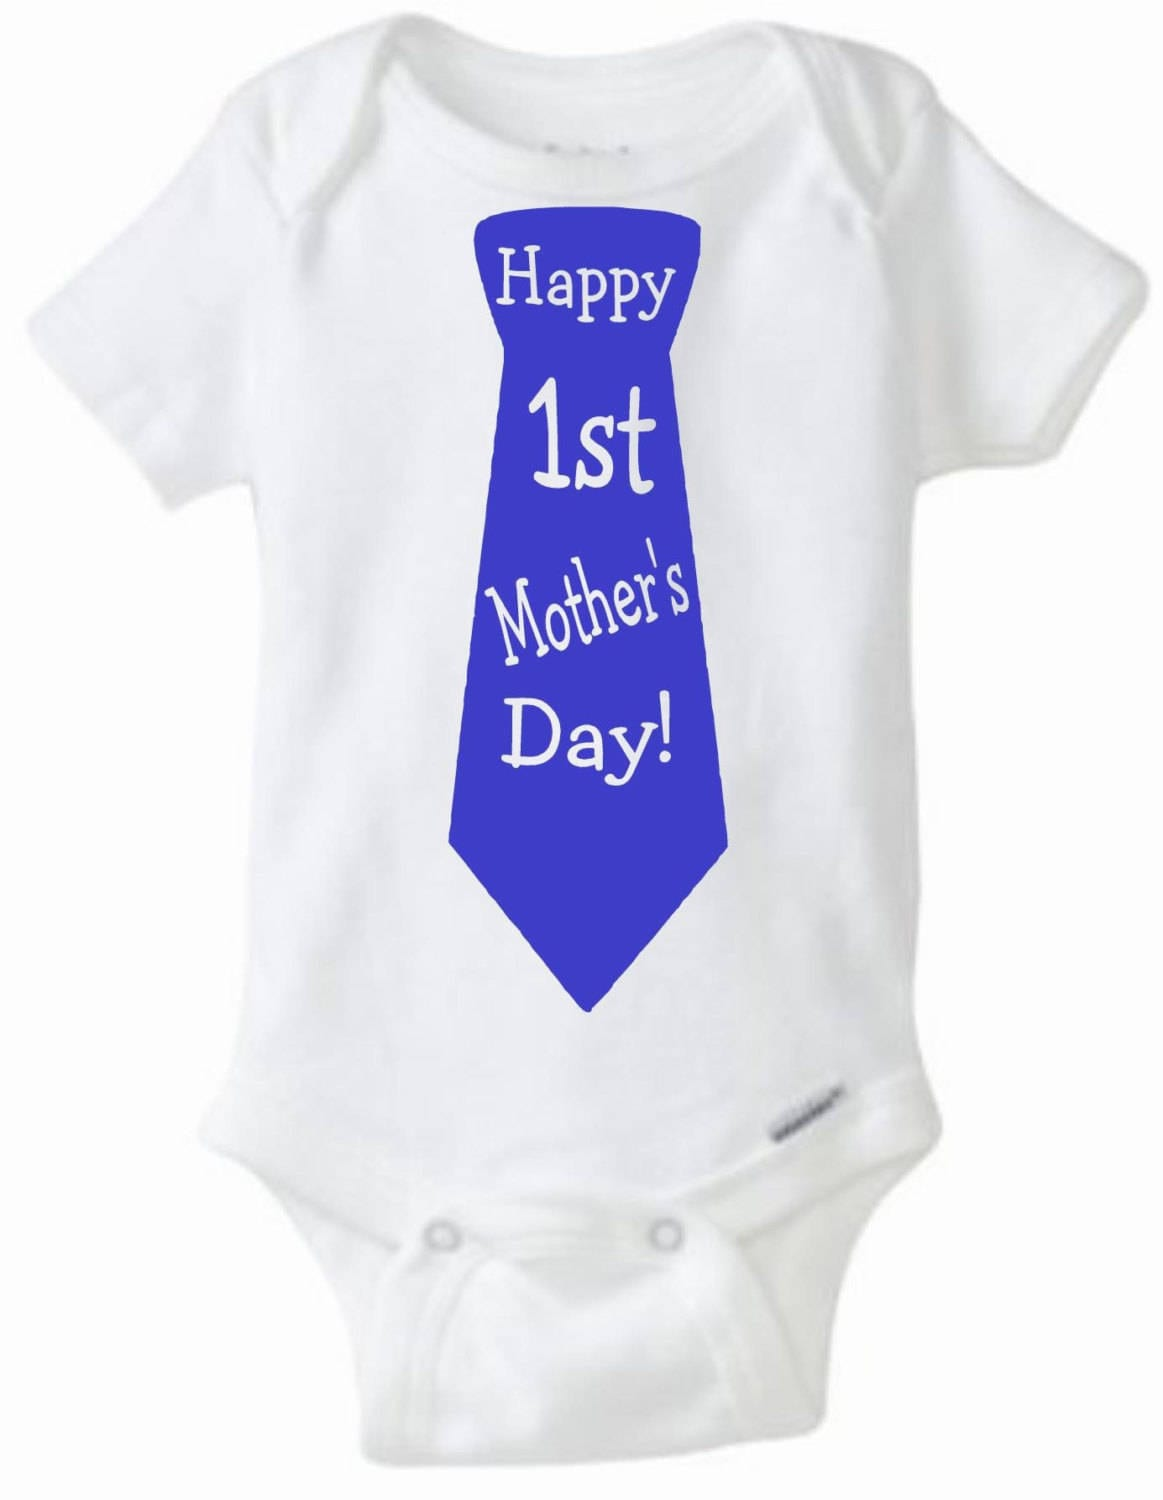 first mother s day baby shirt mother s day gift baby shirt for new